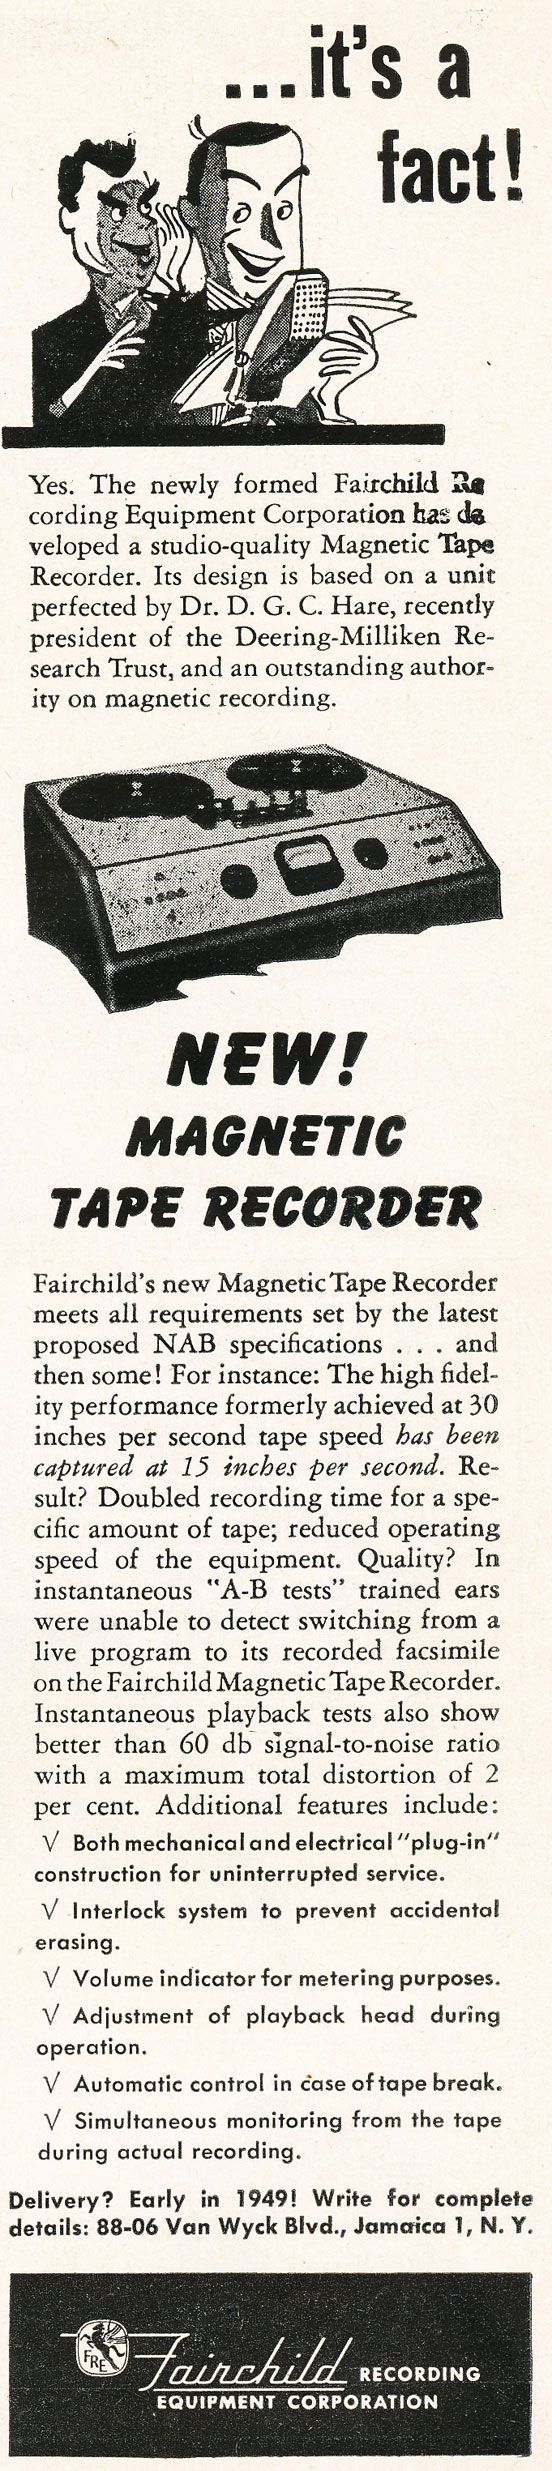 1948 Fairchild ad  in Reel2ReelTexas.com's vintage recording collection